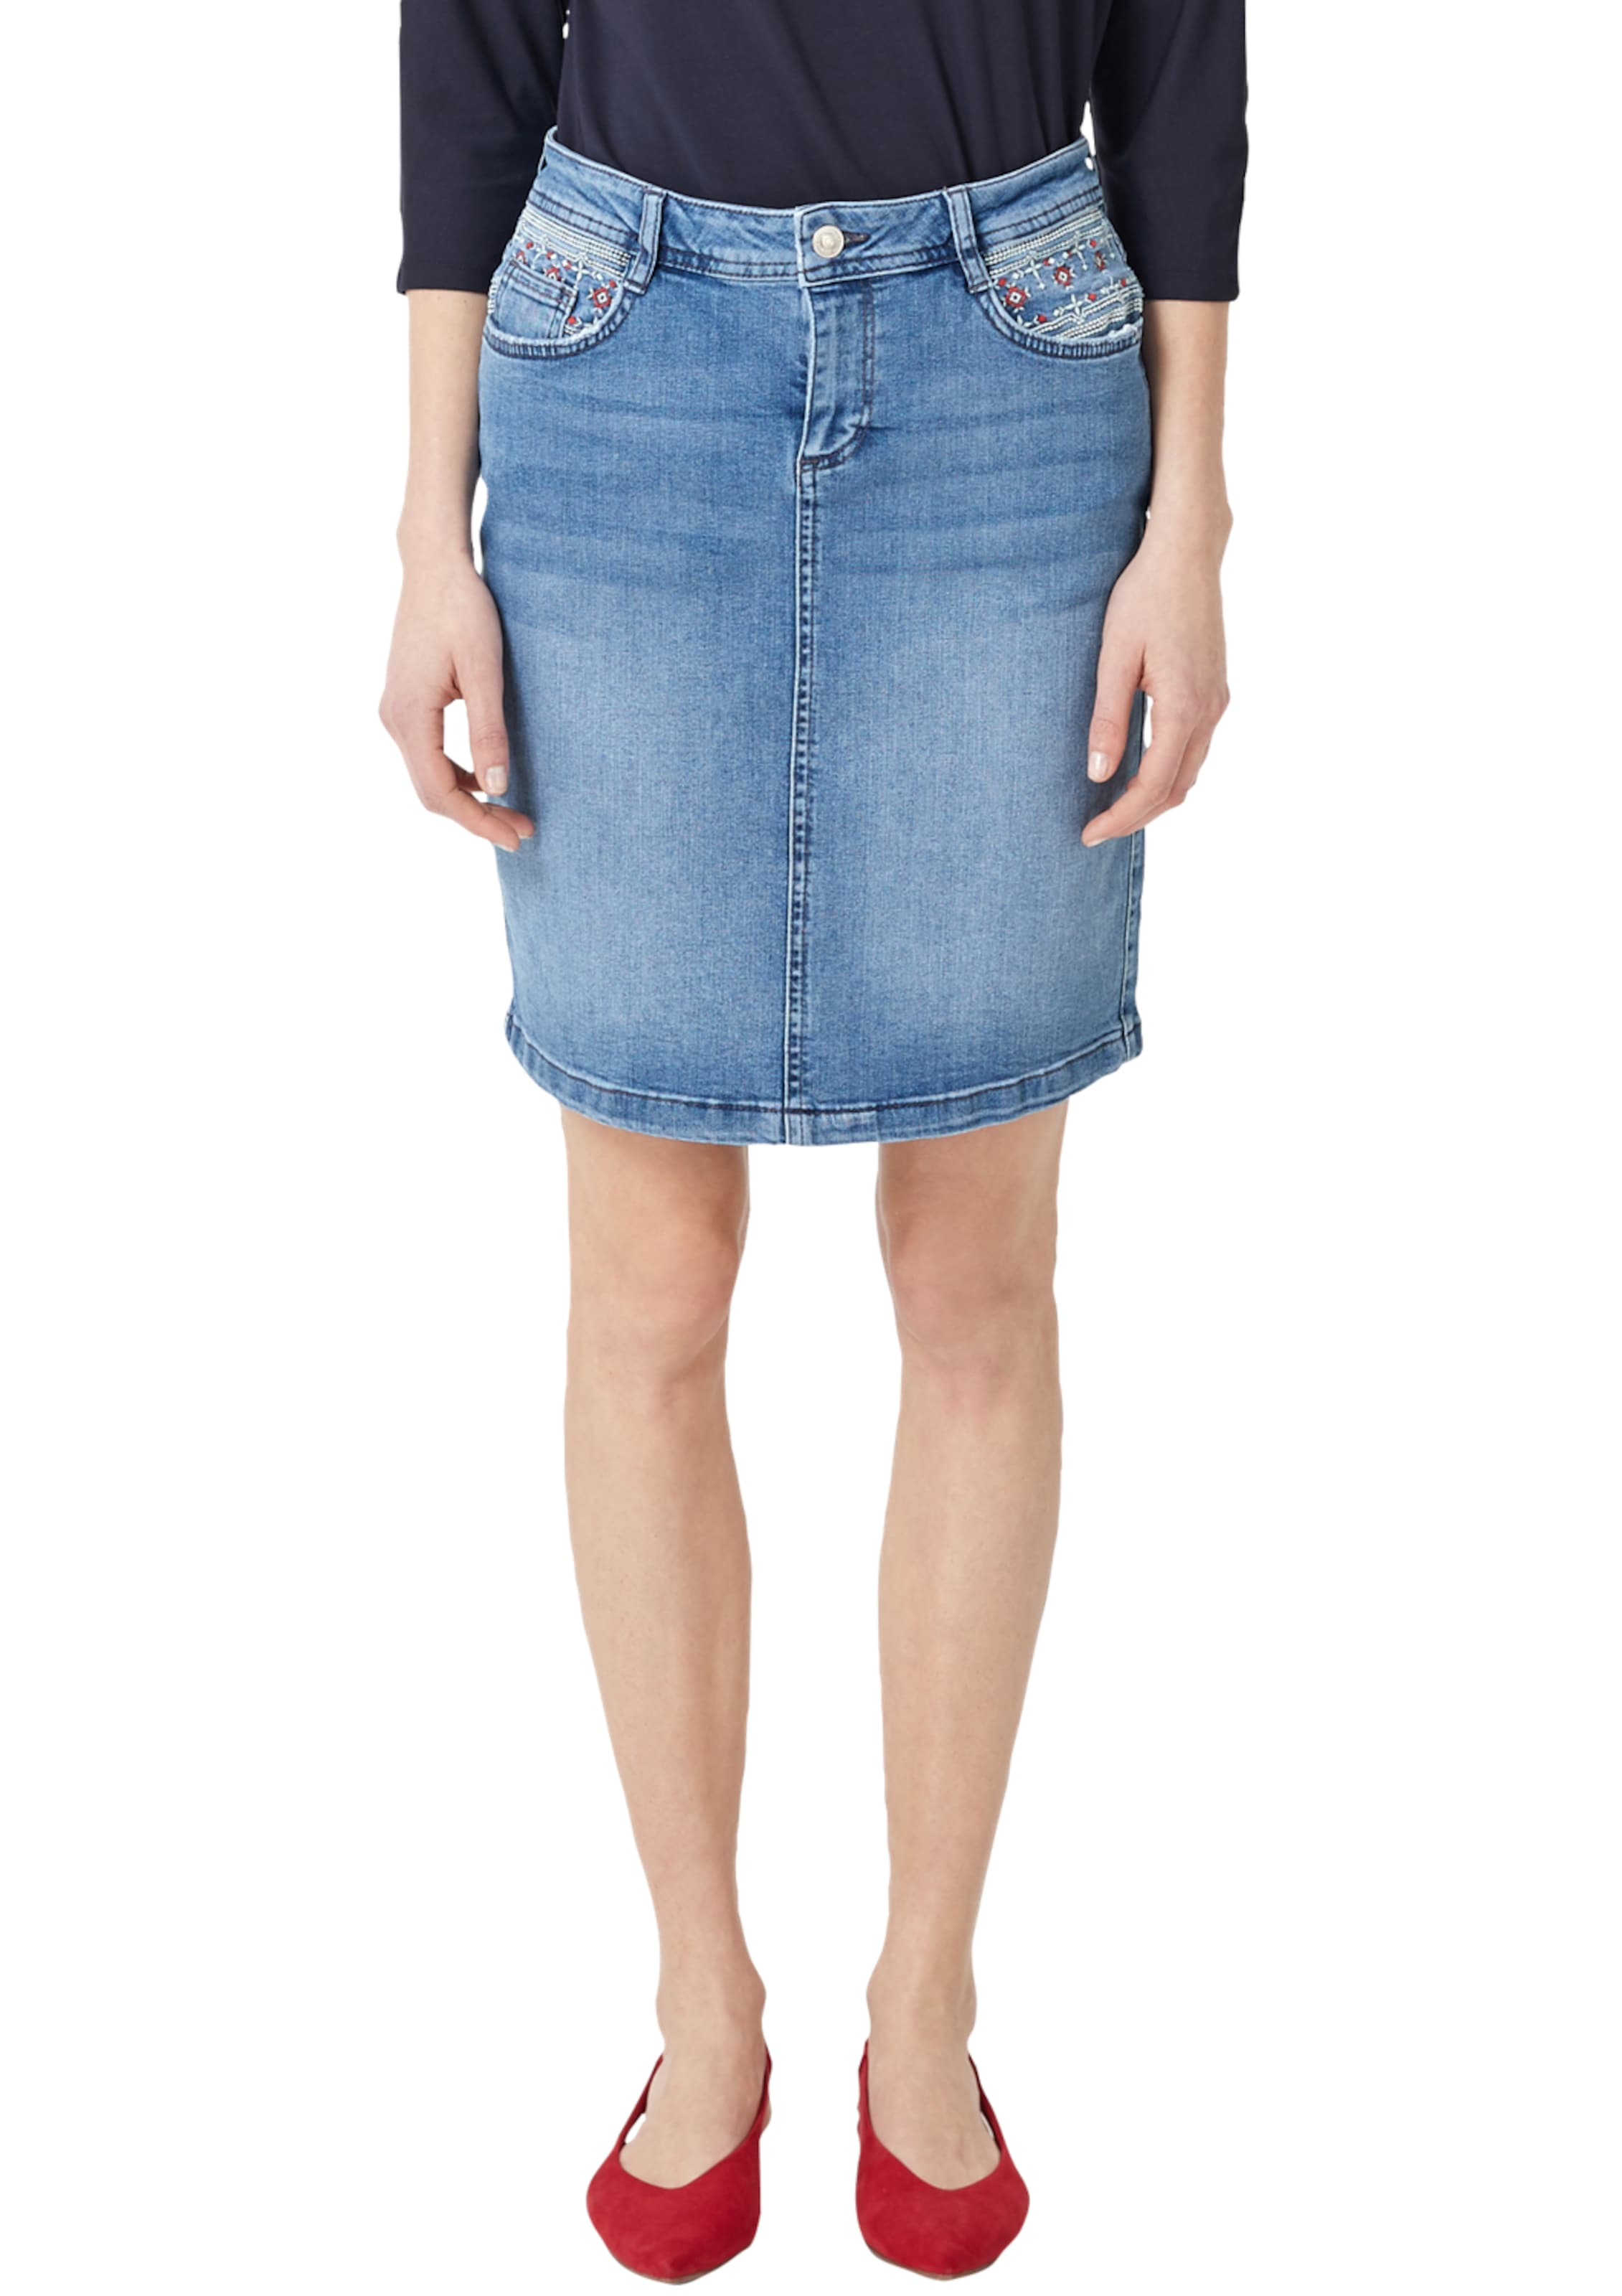 Denimrock Hellblau oliver In Label S Red CtQrsdh